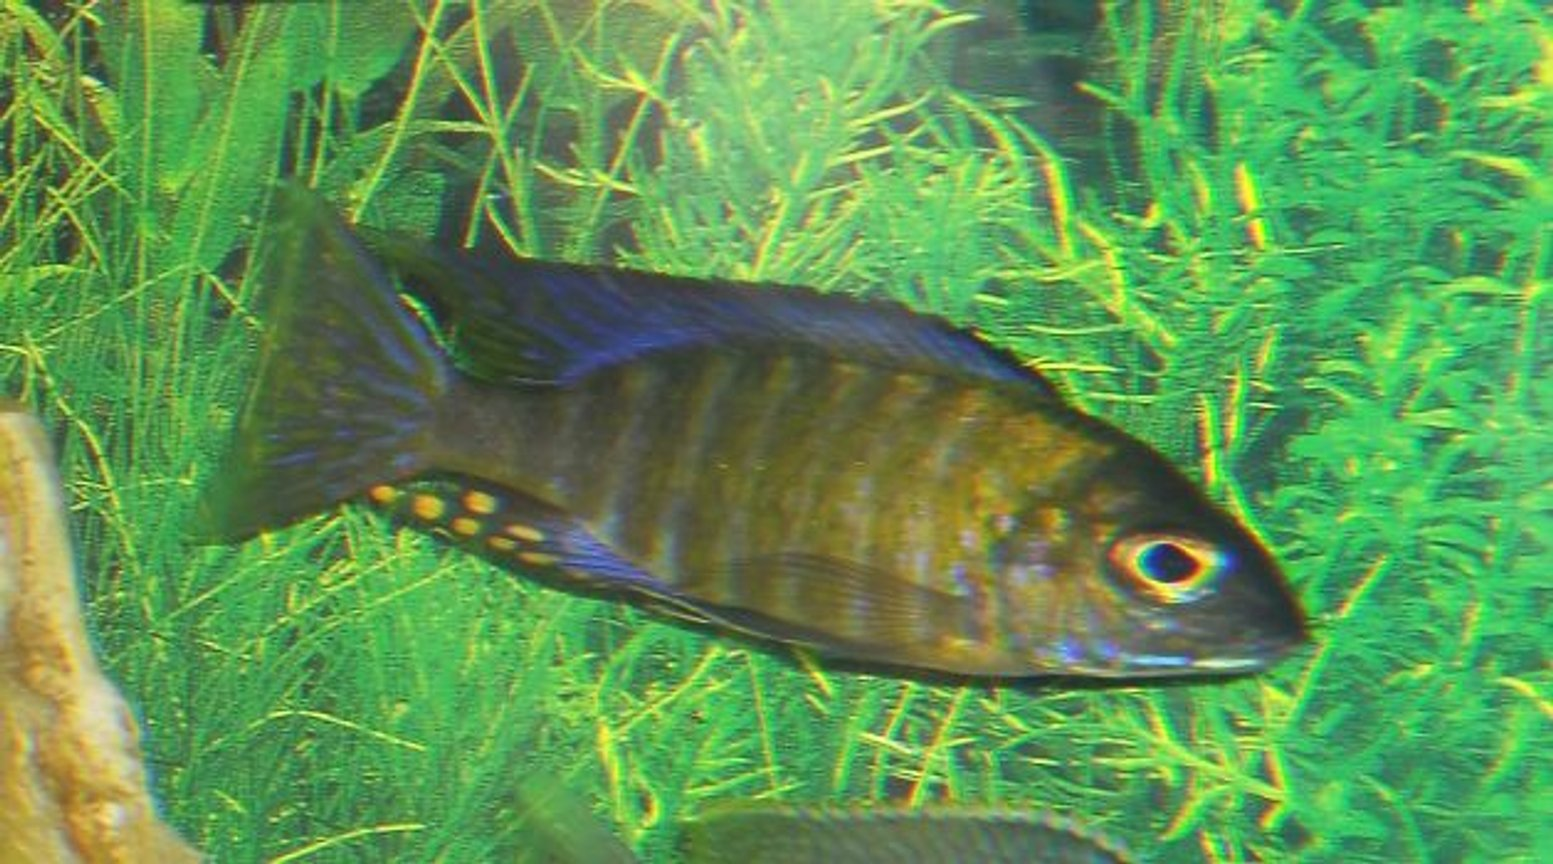 freshwater fish - aulonocara sp. - chitande stocking in 54 gallons tank